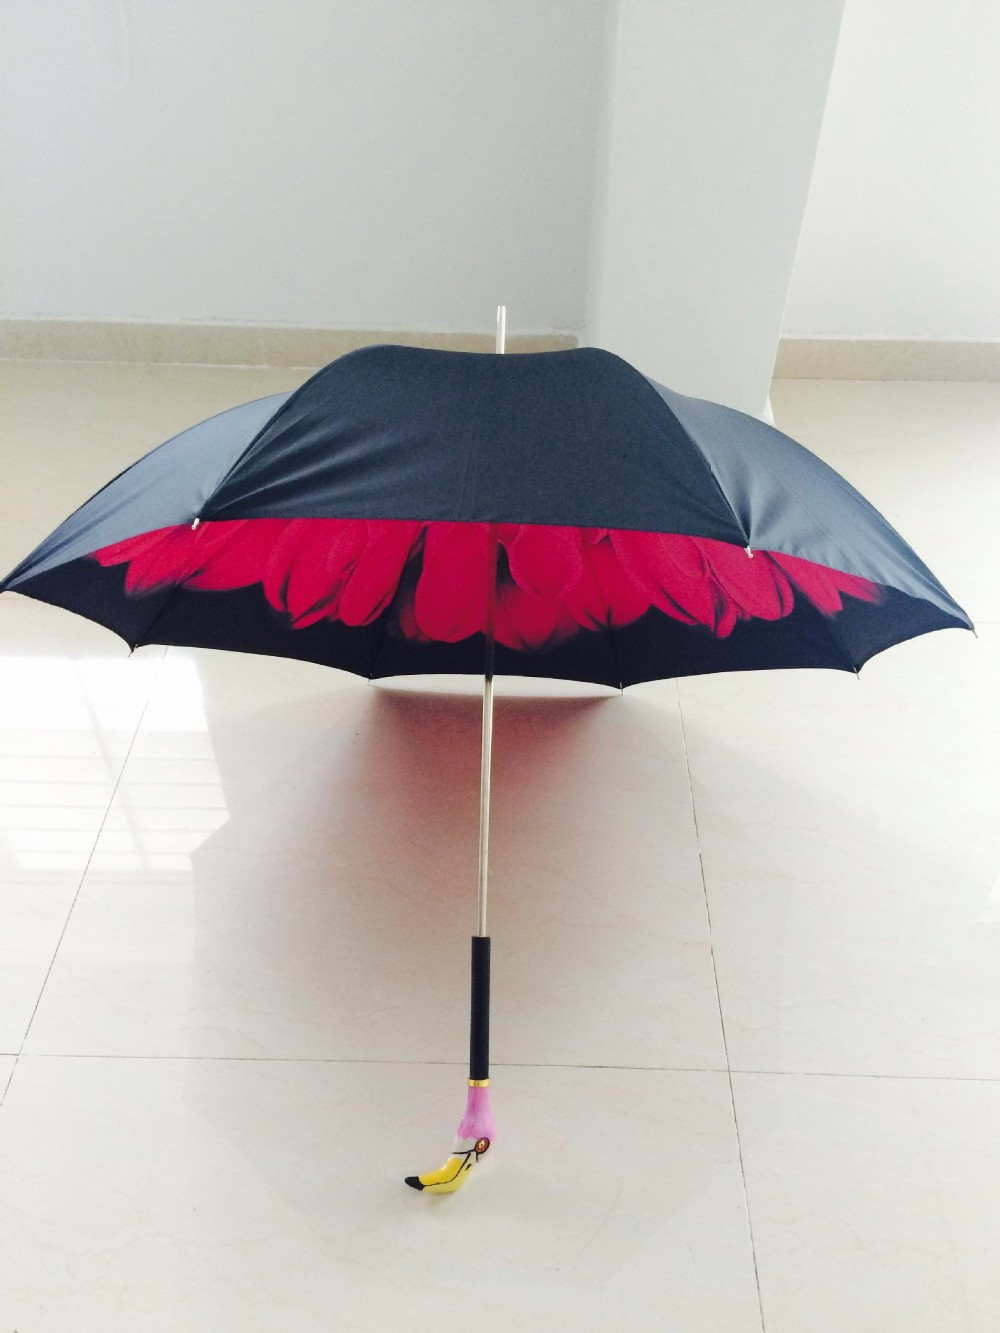 WholeSale Royal Luxury Brand Hand Painted Lacquer Metal Flamingo Umbrella  Sunny Rainy Long-handle Intelligent Royal Umbrella - us5 85380f25688c